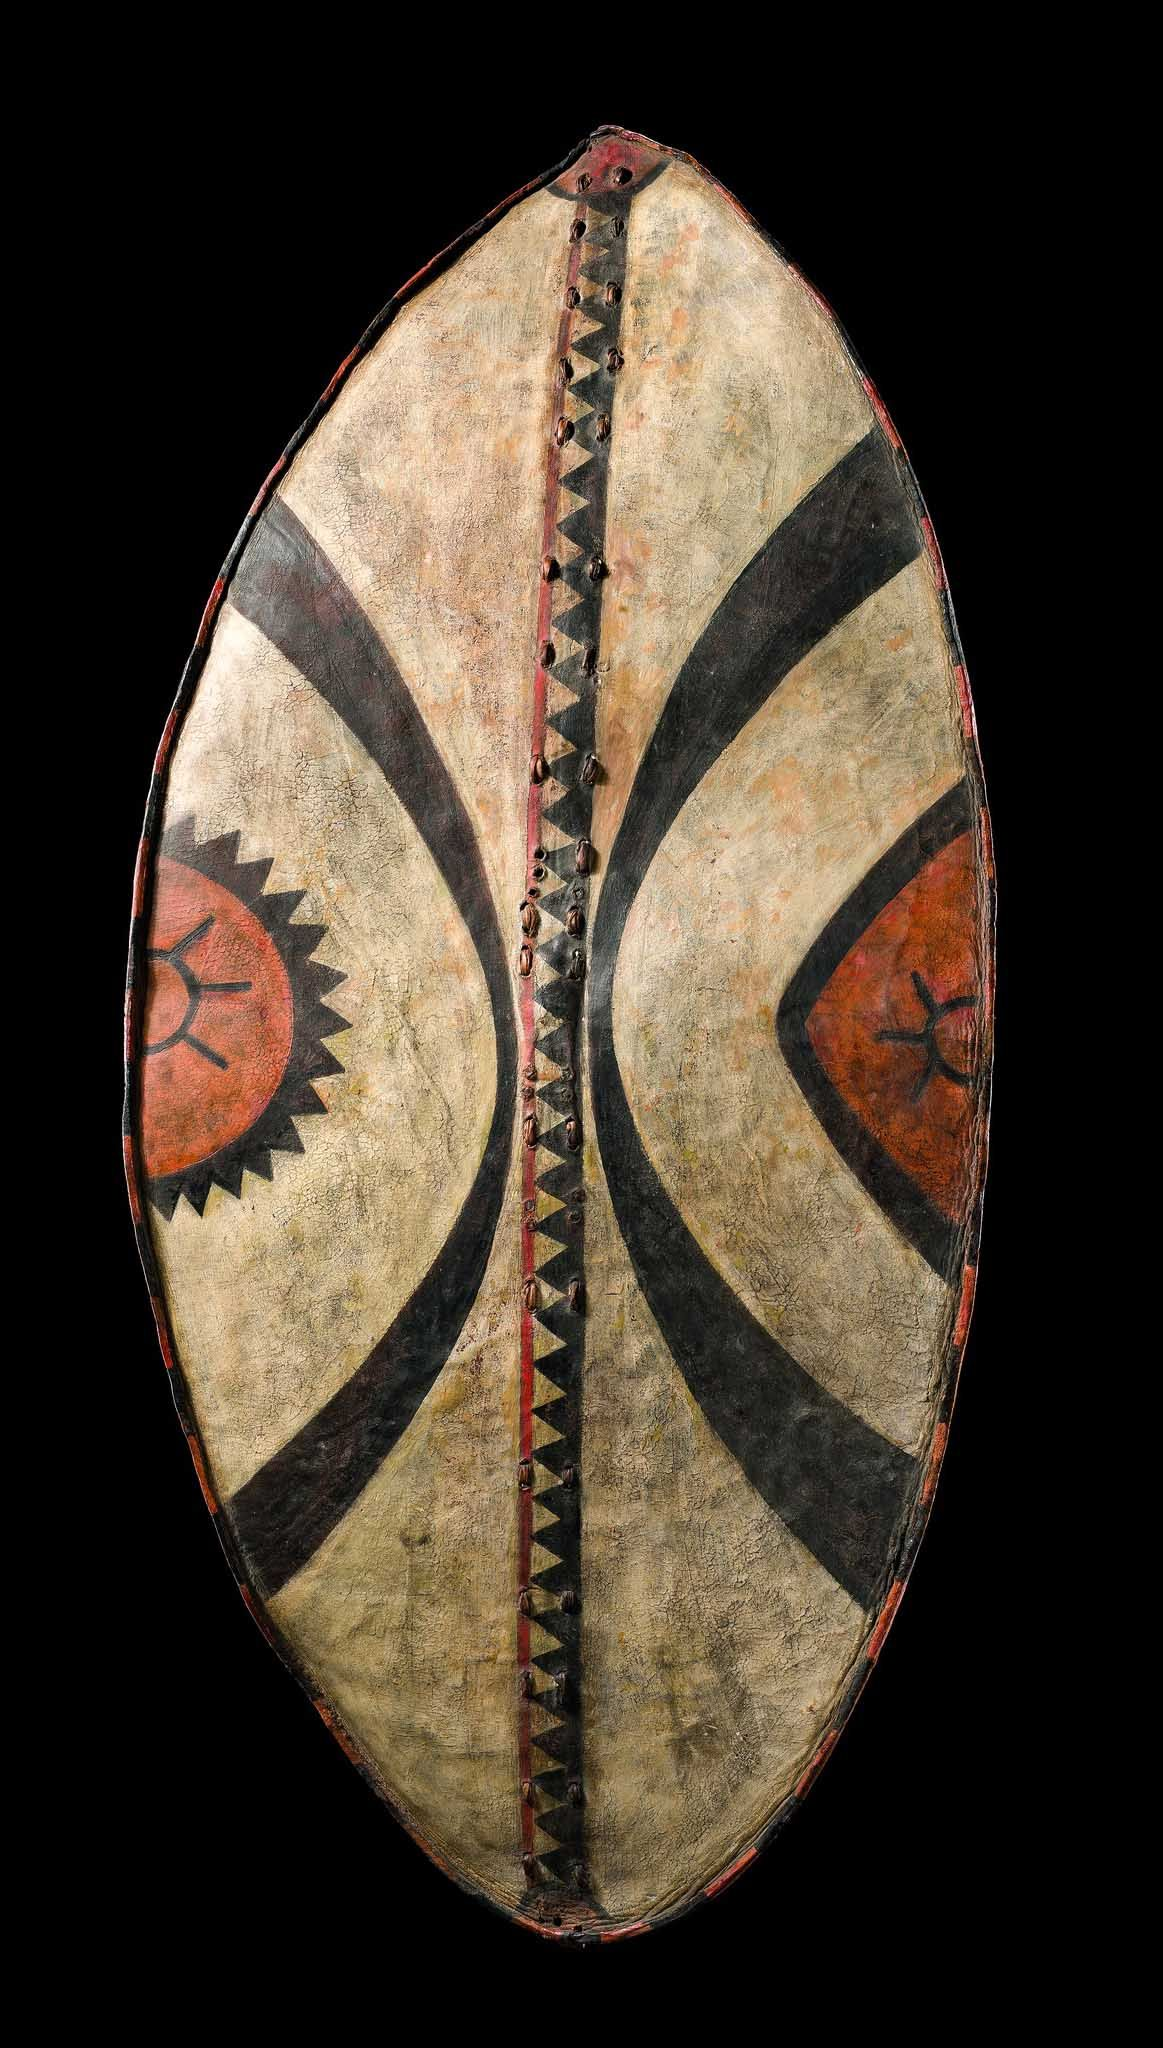 20+ Ancient African Shields Drawings Pictures and Ideas on Meta Networks